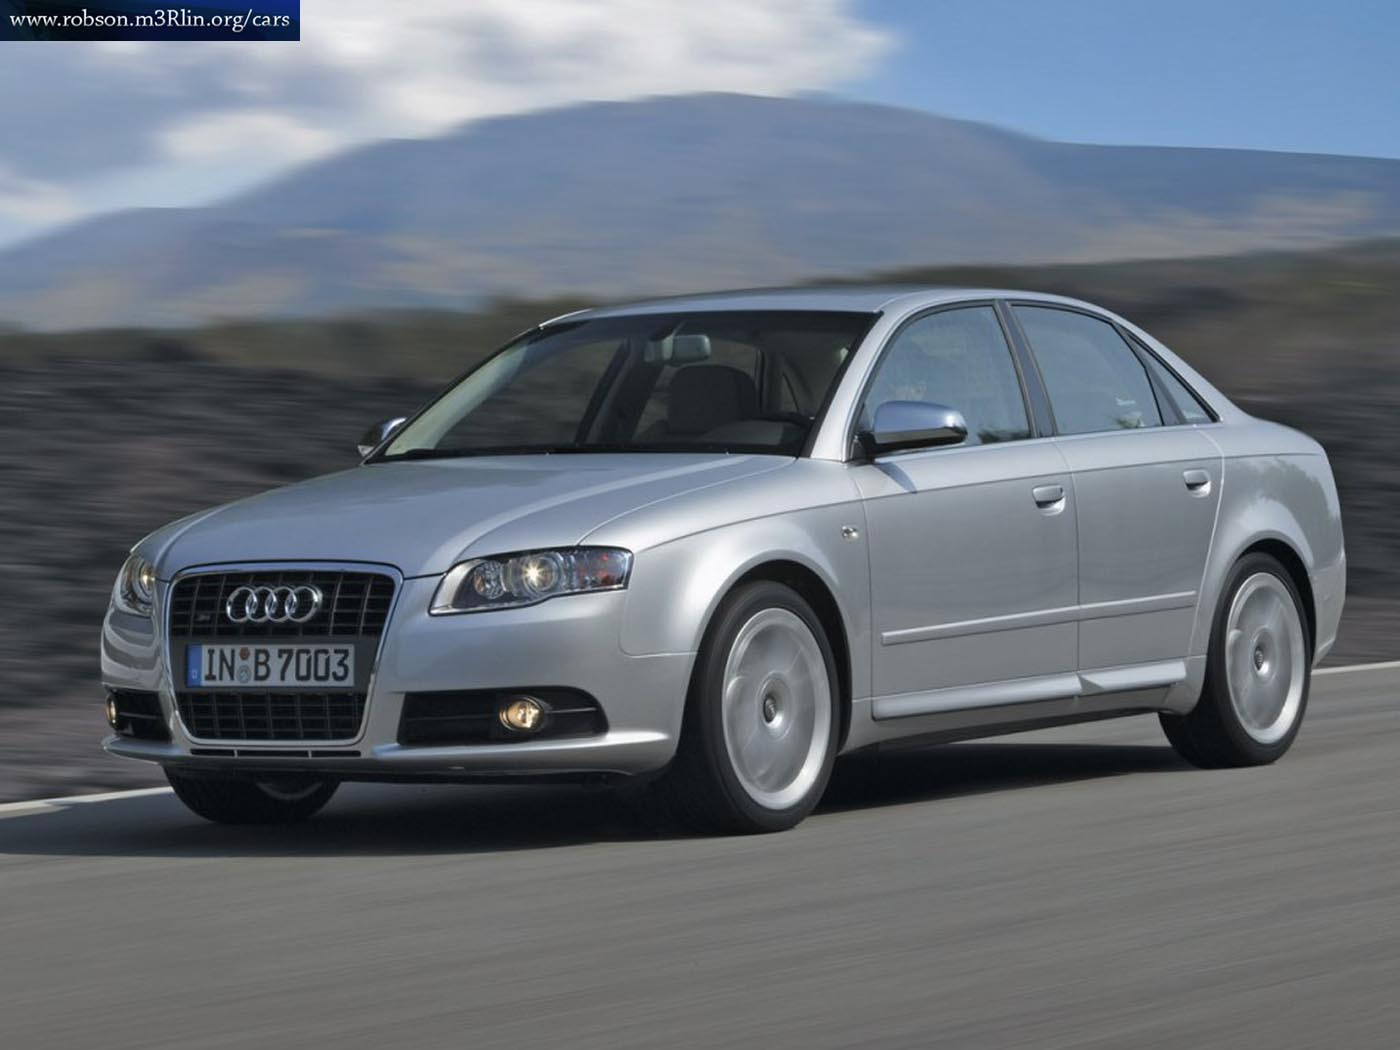 New A6 Avant from Audi 2005 or would you like to drive in the business class? #1